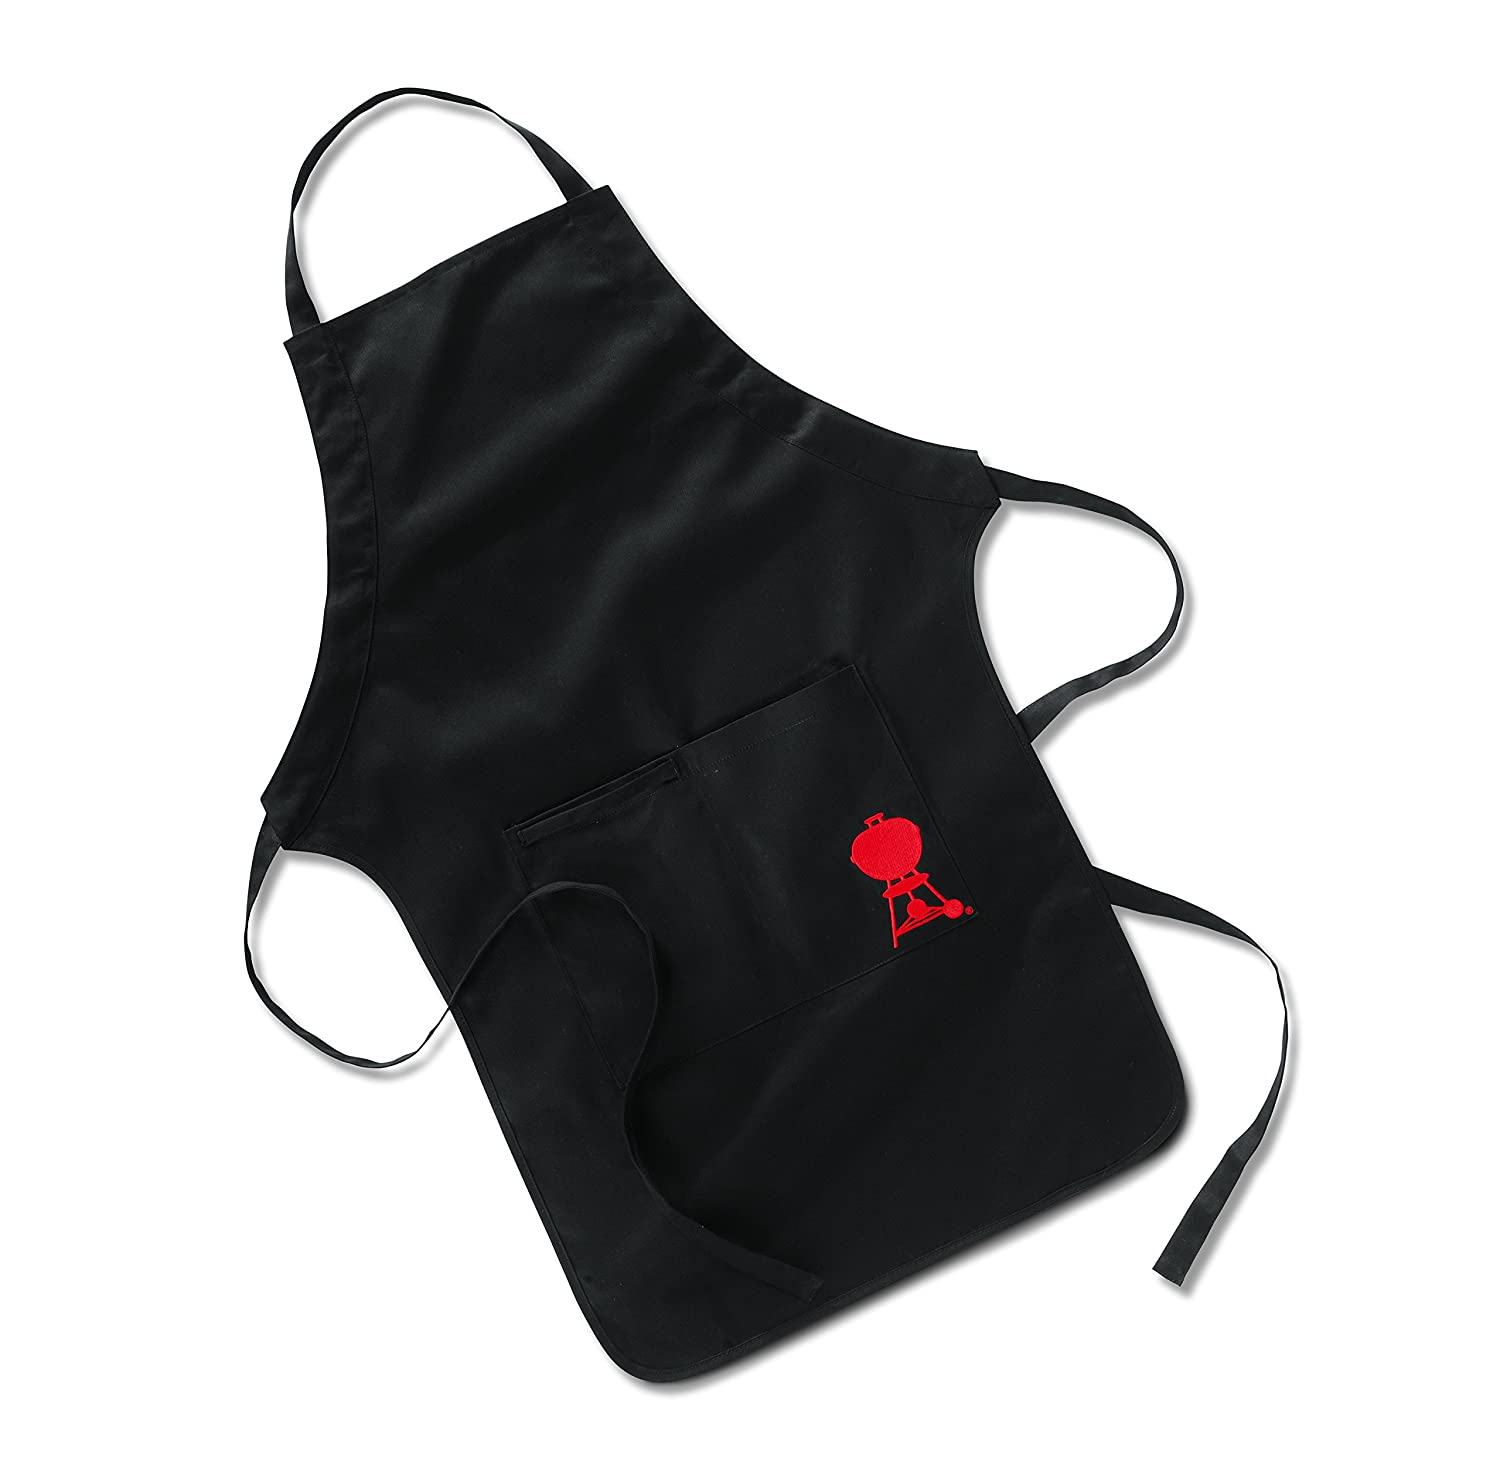 Weber Barbecue Apron with Embroidery 6533 Black Barbecue Aprons With Large Pockets for Utensils